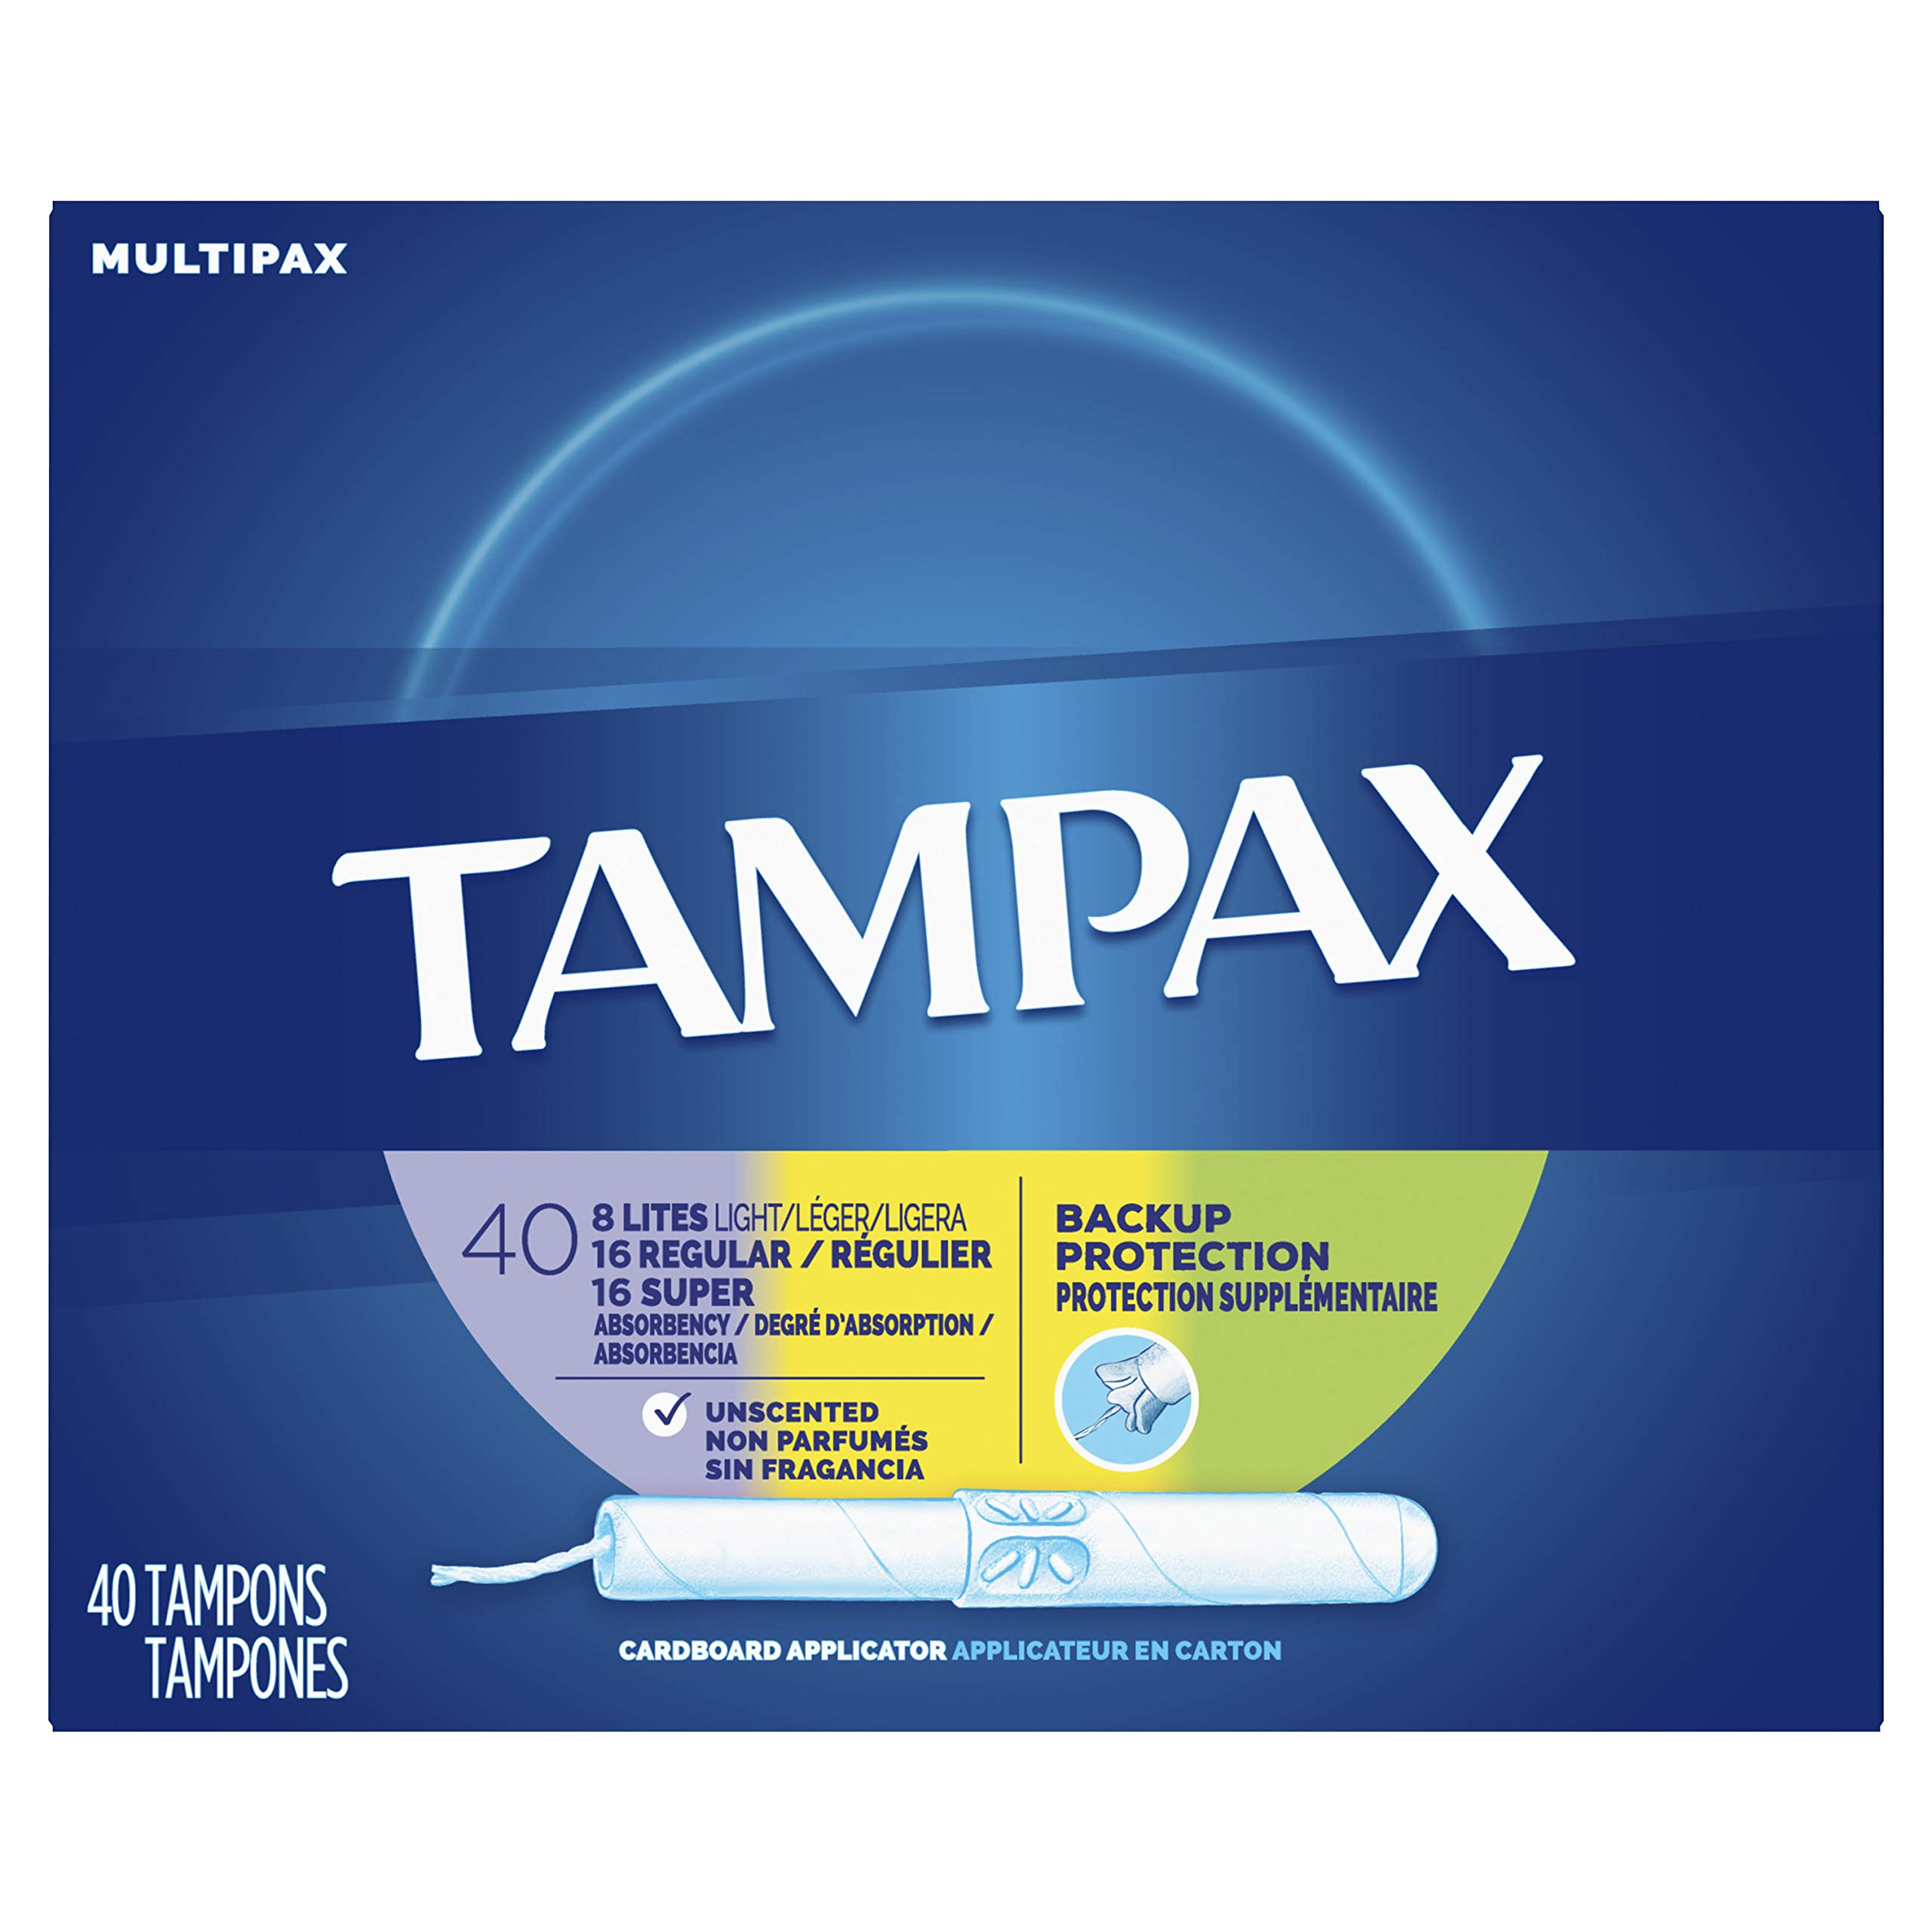 Tampax Cardboard Applicator Tampons, Light/Regular/Super Absorbency Multipack, Unscented, 40 count - Pack of 3 (120 Total Count) by Tampax